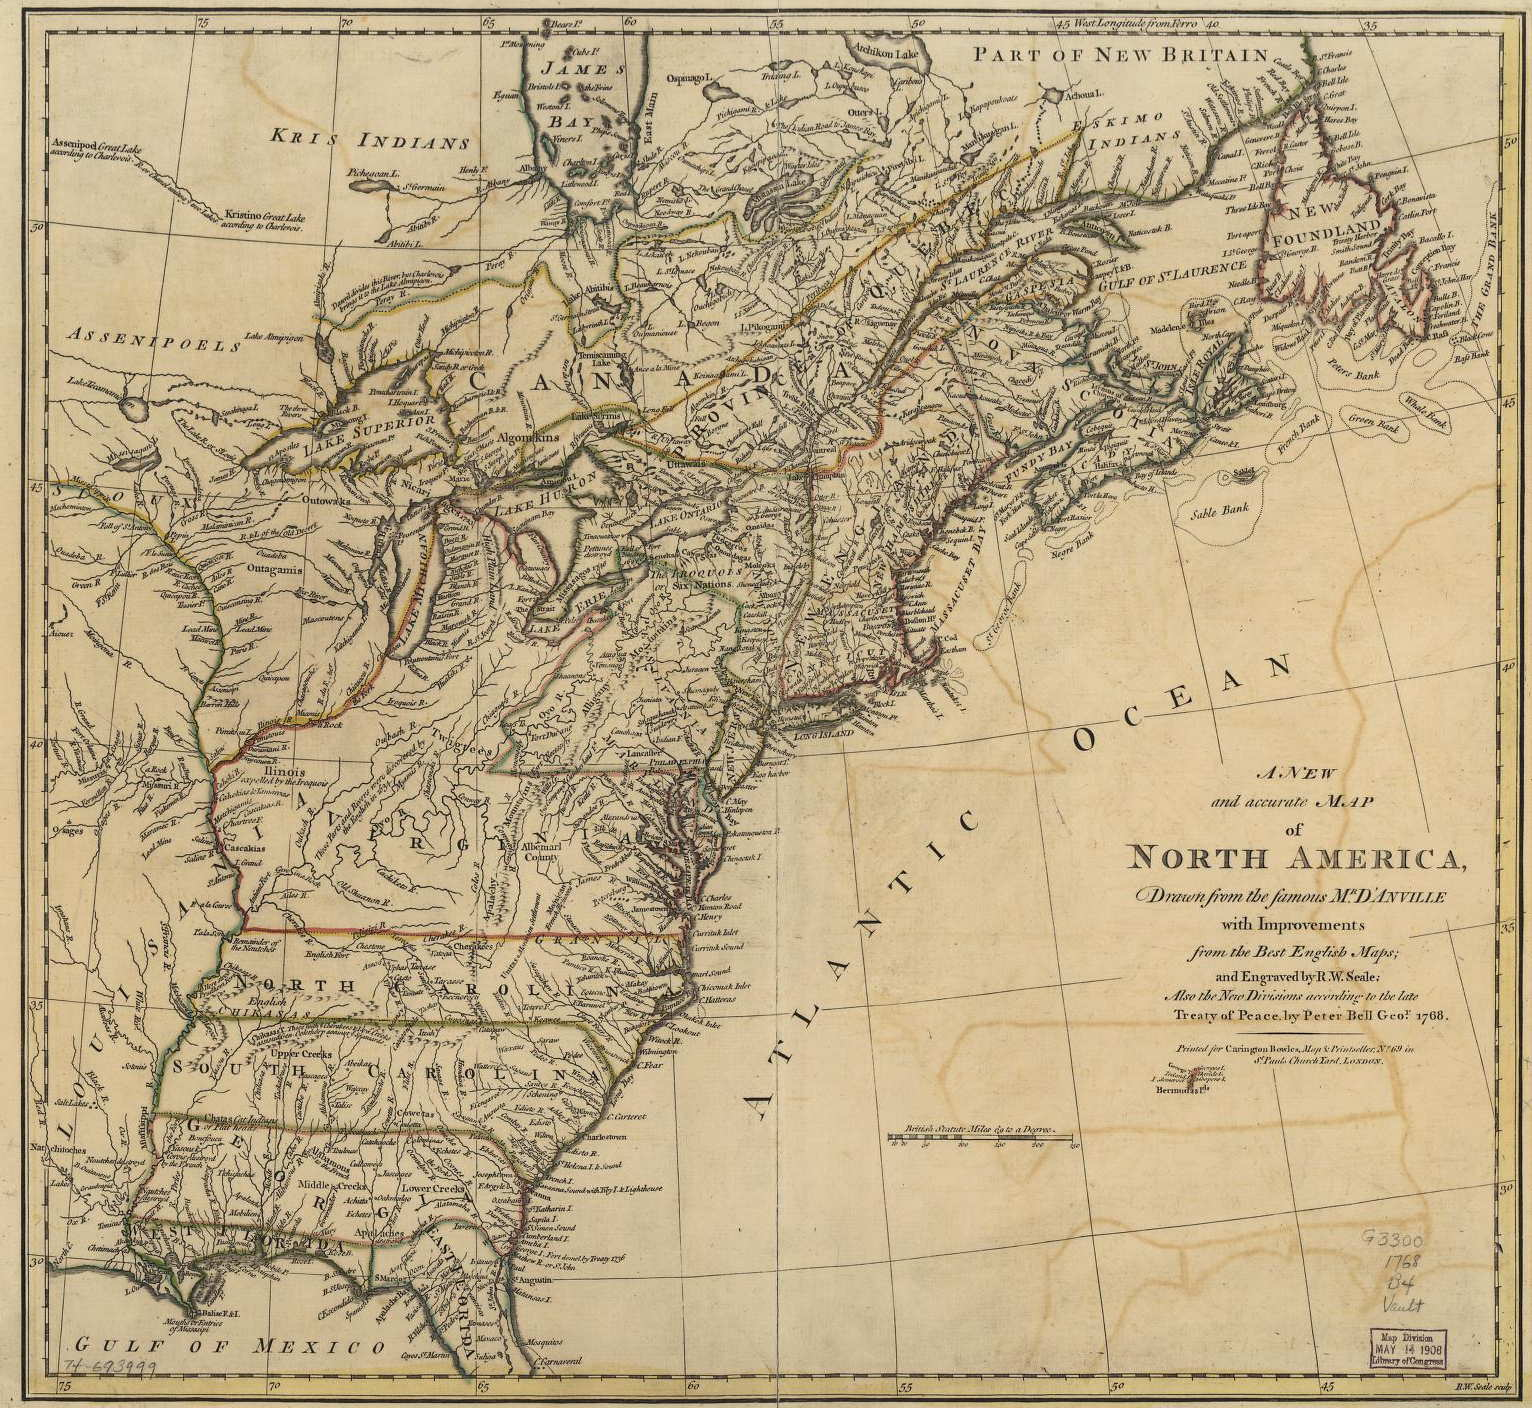 an introduction to the two english societies of new england and chesapeake region In england, a factor of enormous consequence for social development in the  two colonies  the peopling of british north america: an introduction  horn  forces us again and again to see major topics in chesapeake history--the   english society was transferred to the new english colonies of maryland and  virginia.